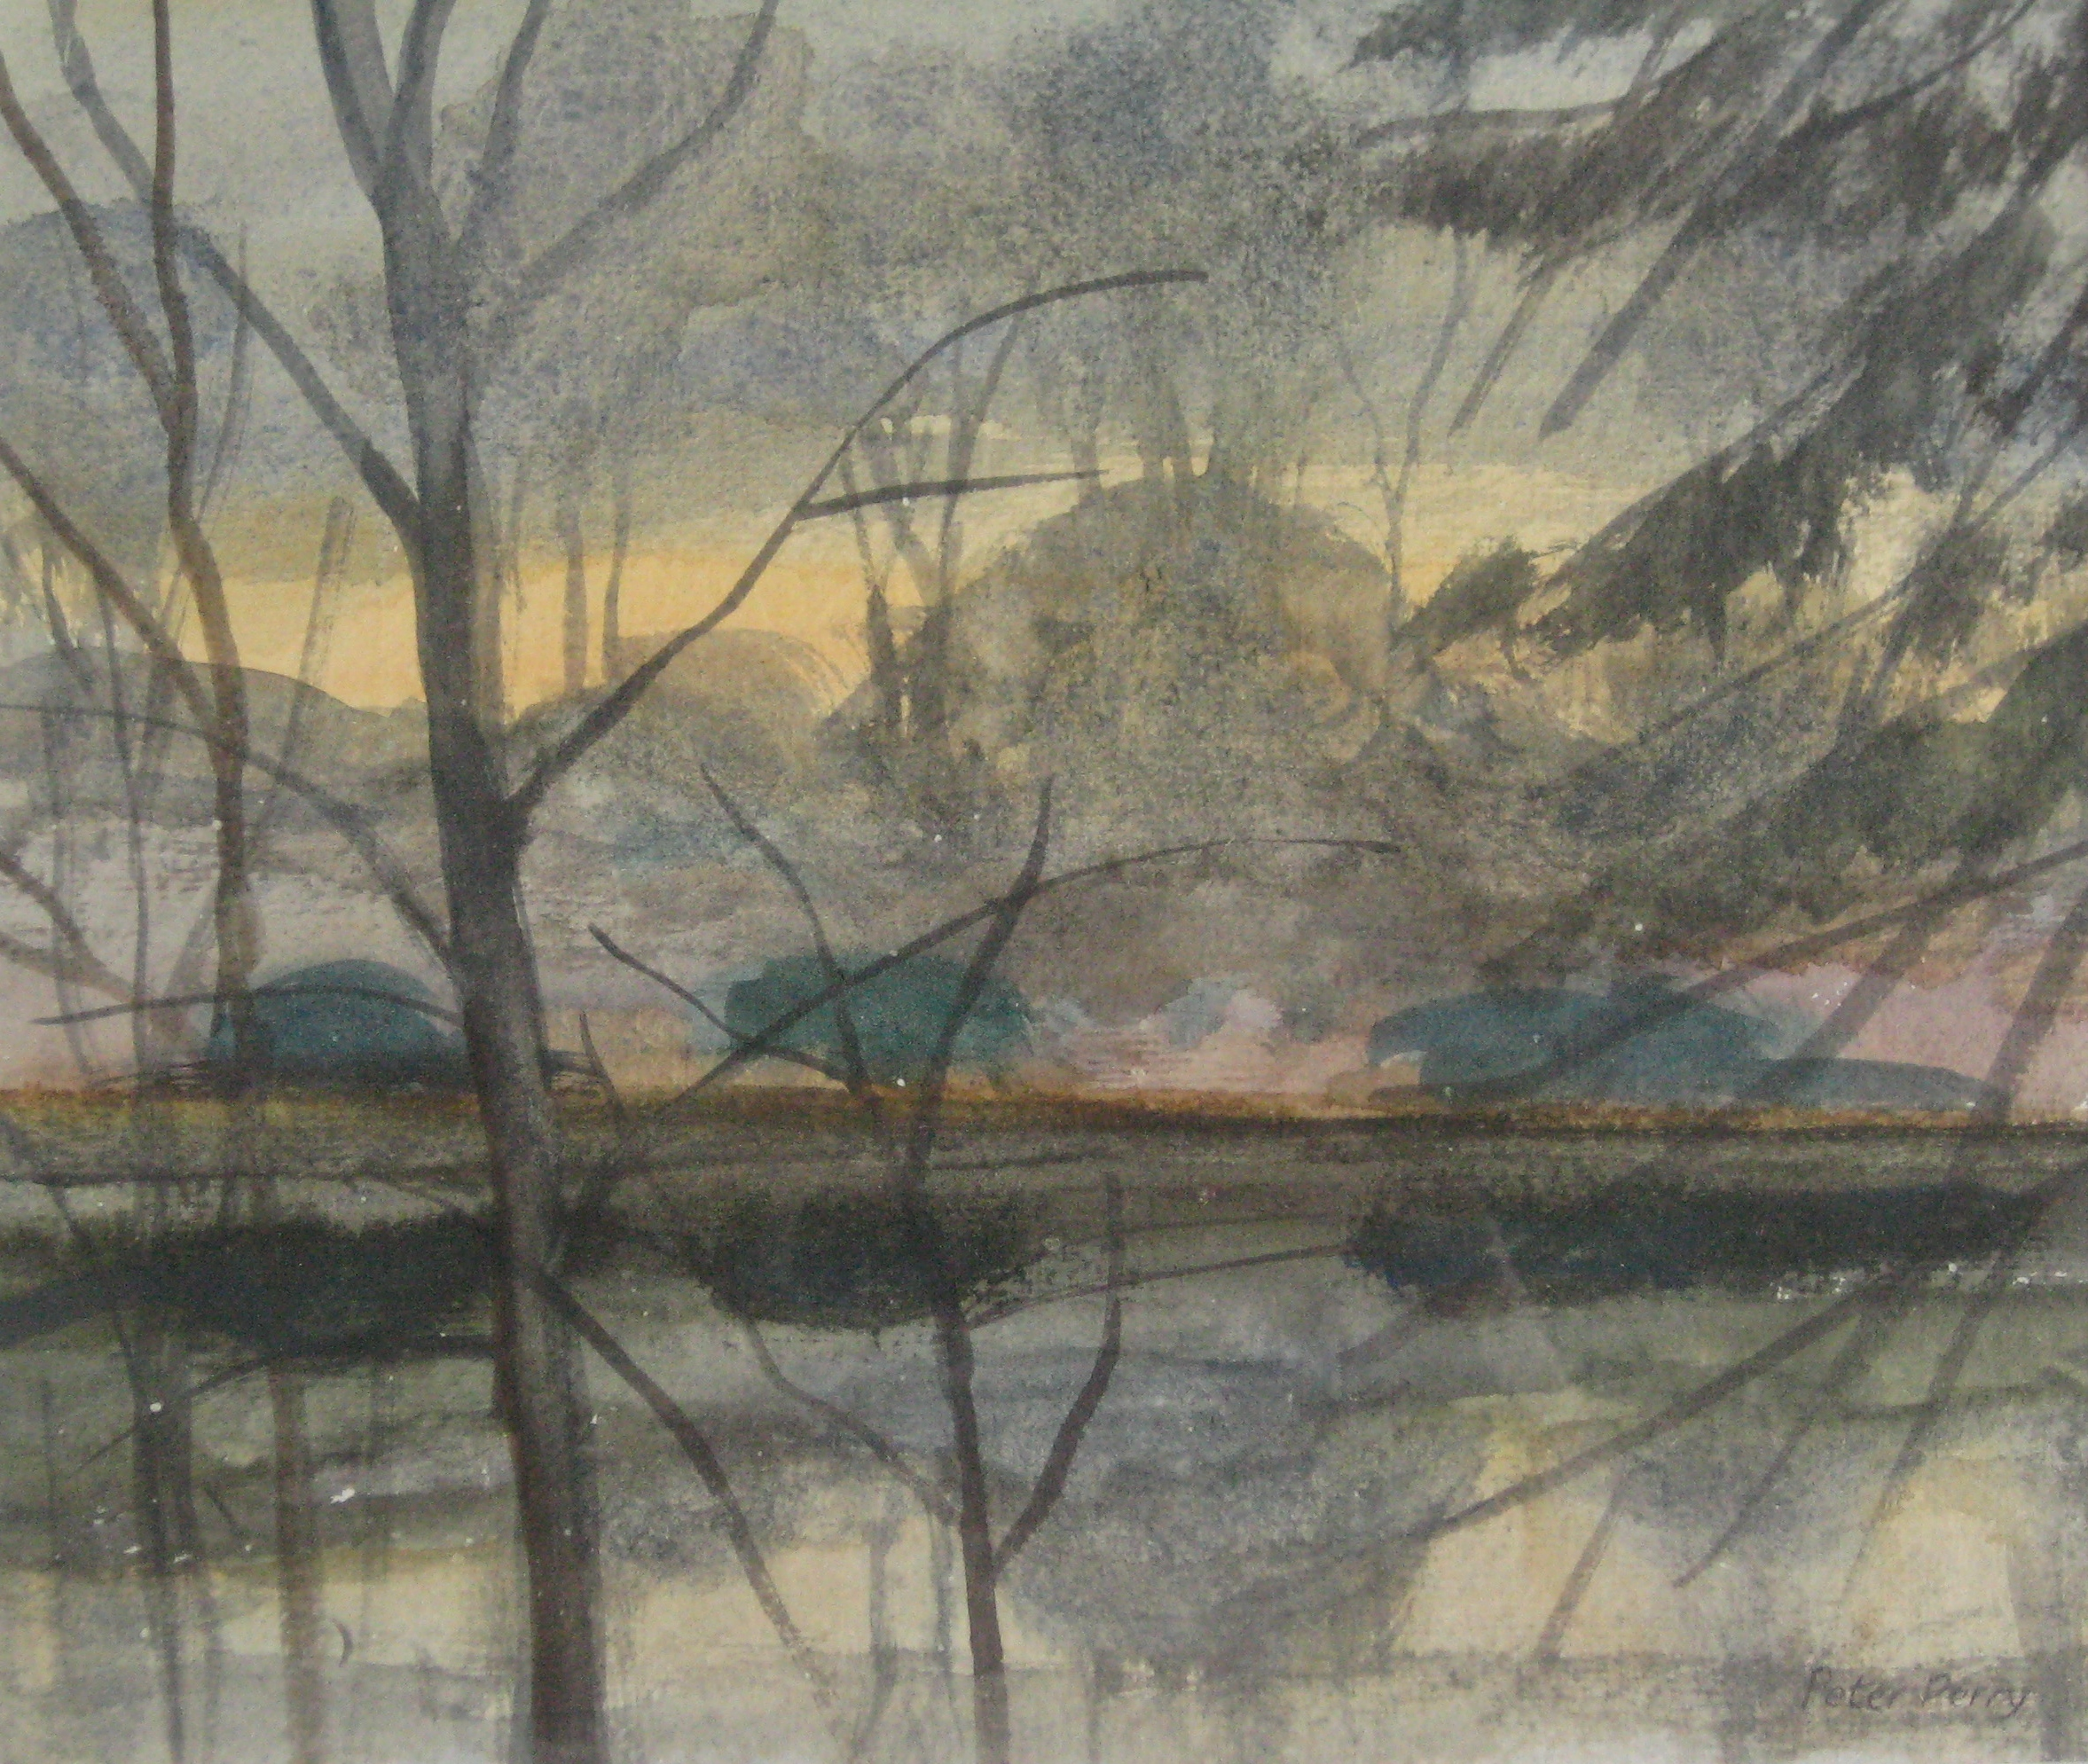 "REFLECTIONS , AUTUMN, NORMANDY  9X7.5"" (23X19cm)   Watercolour    Sold  Shortlisted for 2016 Royal Academy Summer Exhibition"